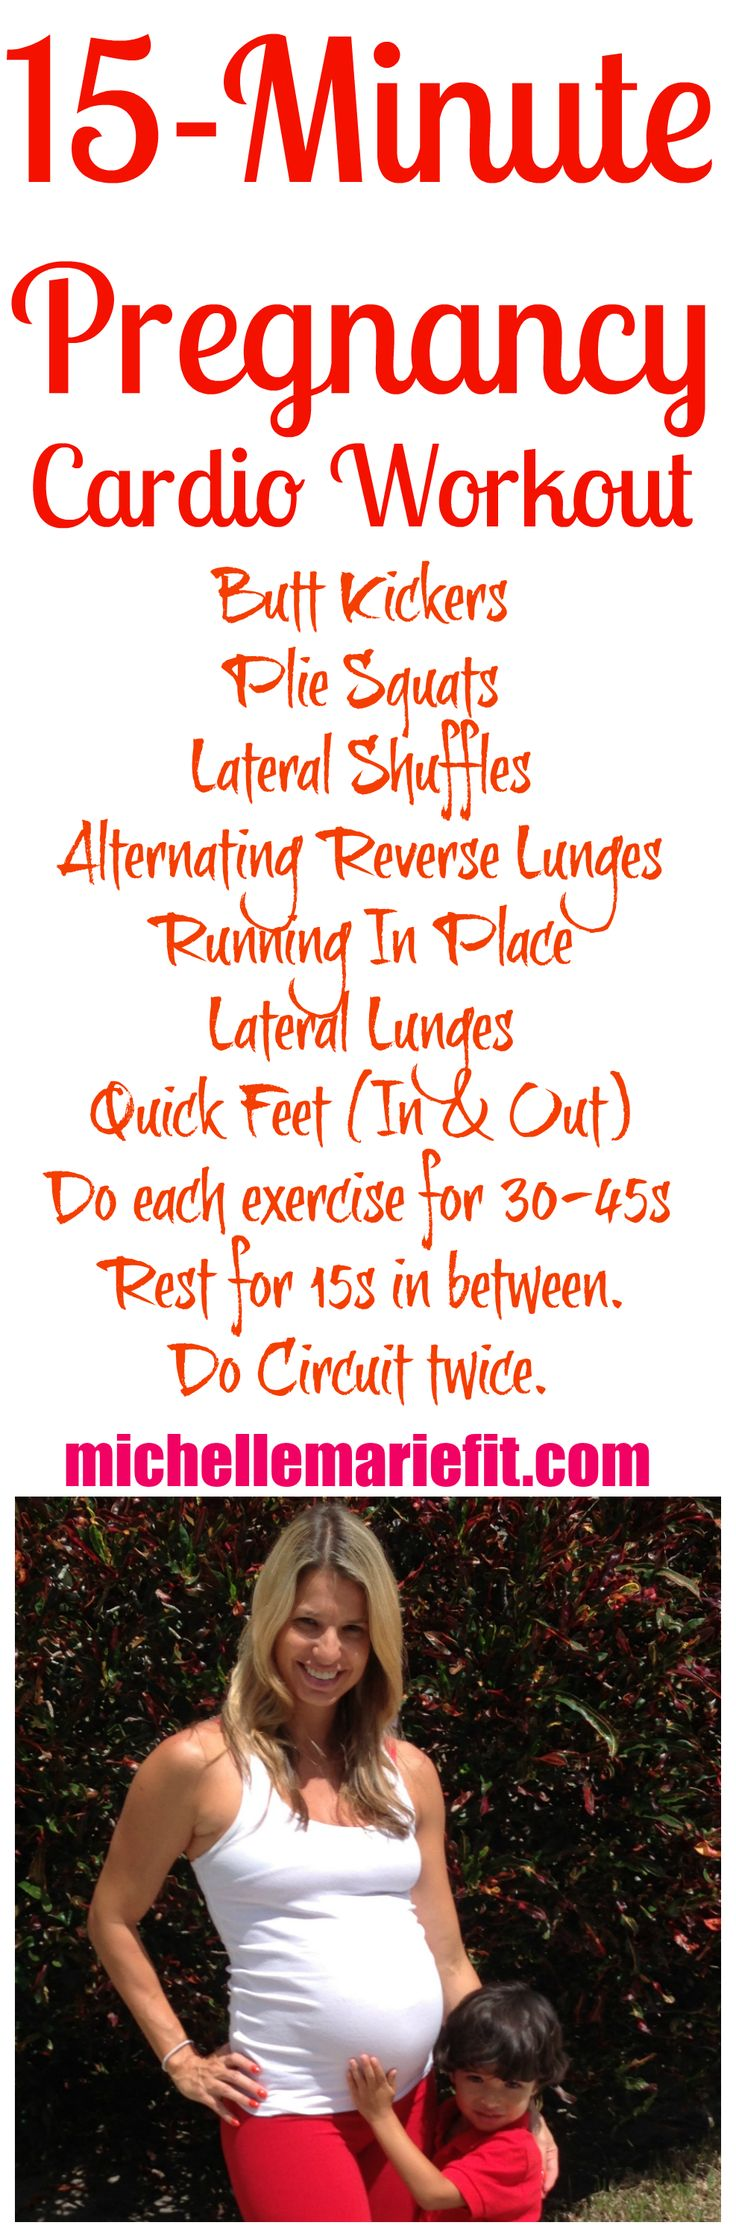 15 Minute Pregnancy Cardio Workout.   Love this pregnancy cardio workout.  The whole thing can be done at home.  She has a 14 day pregnancy workout challenge, I'm totally doing it, this is great.  Here is the link to the pregnancy workout challenge:  http://michellemariefit.com/pregnancy-workout-challenge-14-day-jumpstart/